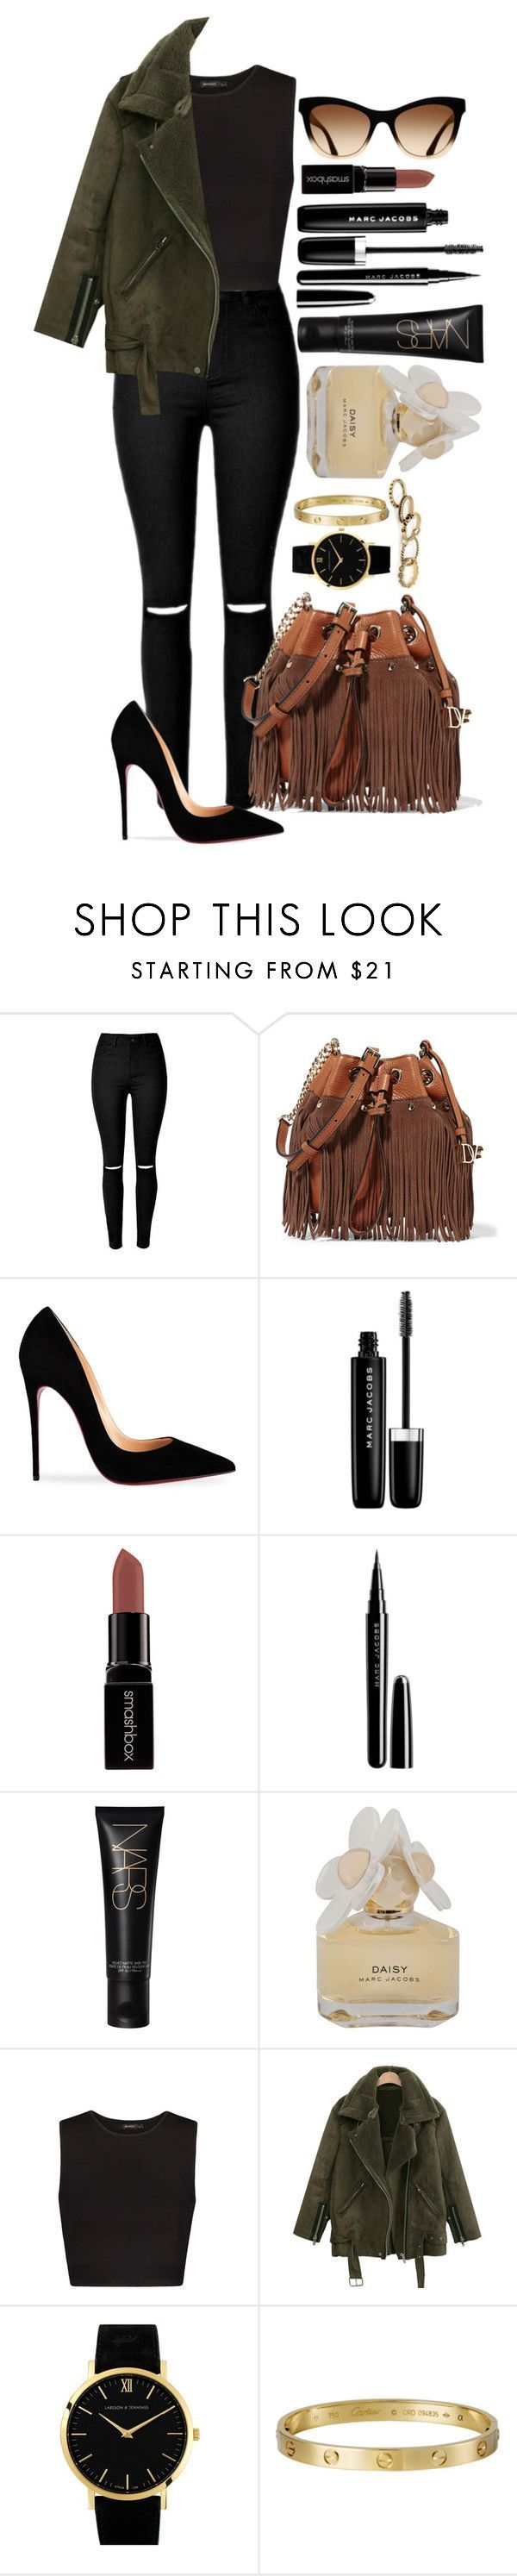 """Untitled #1438"" by fabianarveloc ❤ liked on Polyvore featuring Diane Von Furstenberg, Christian Louboutin, Marc Jacobs, Smashbox, Marc by Marc Jacobs, MANGO, Larsson & Jennings and Giallo"